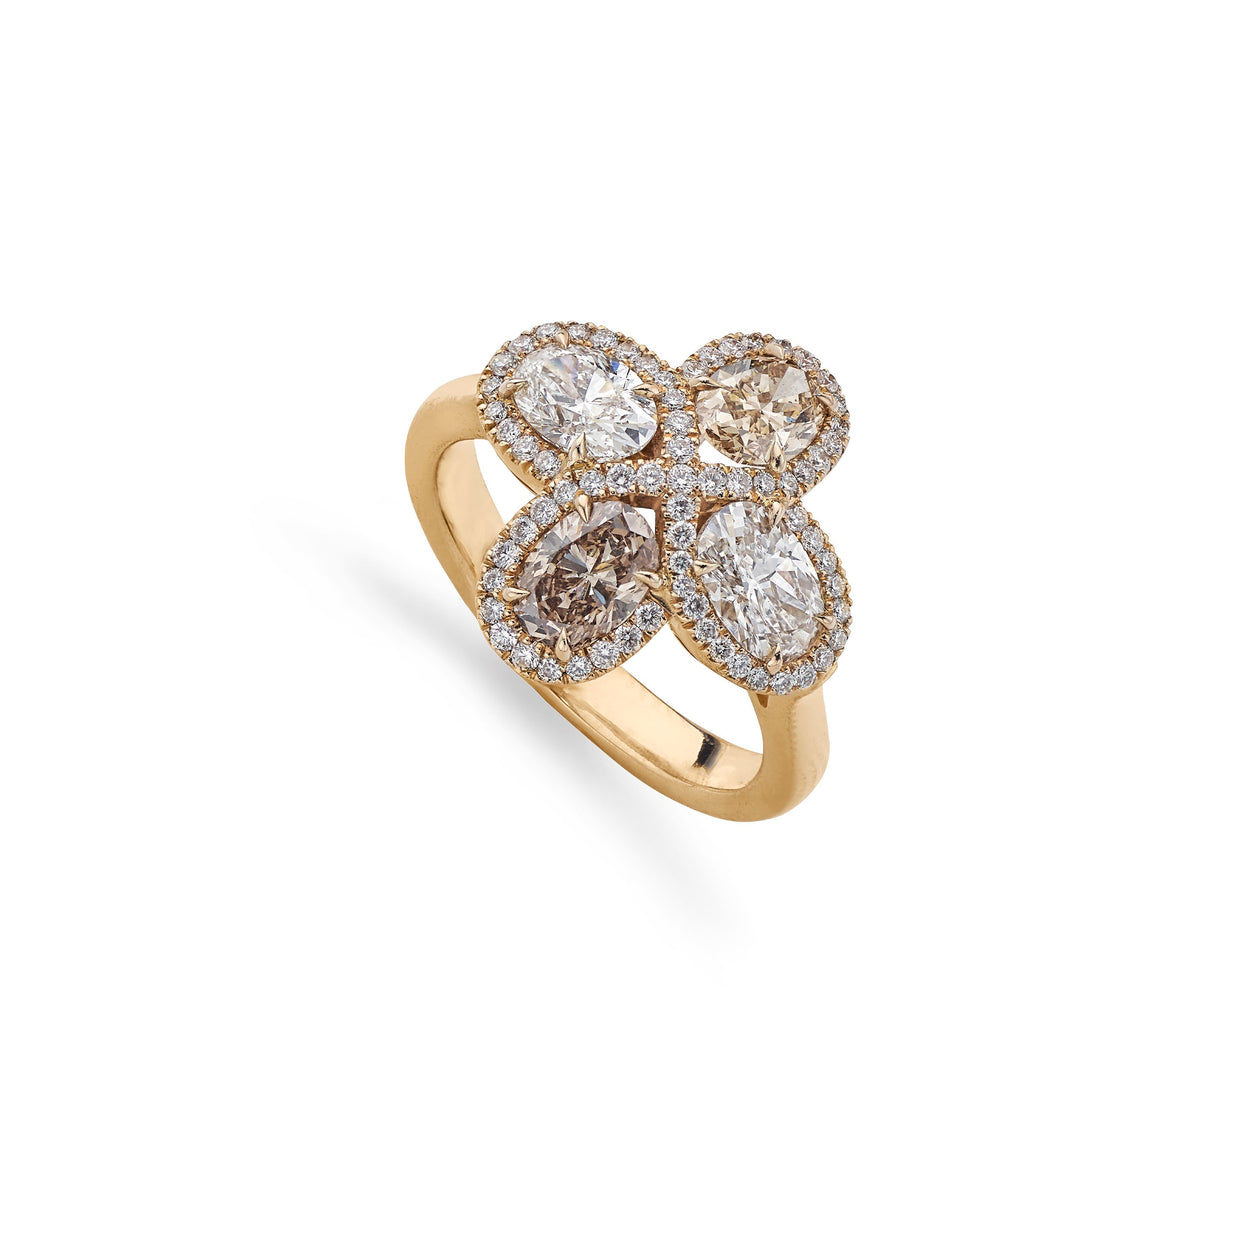 Mixed-Cut Diamond Cluster Ring in 18ct Rose Gold-Hamilton & Inches